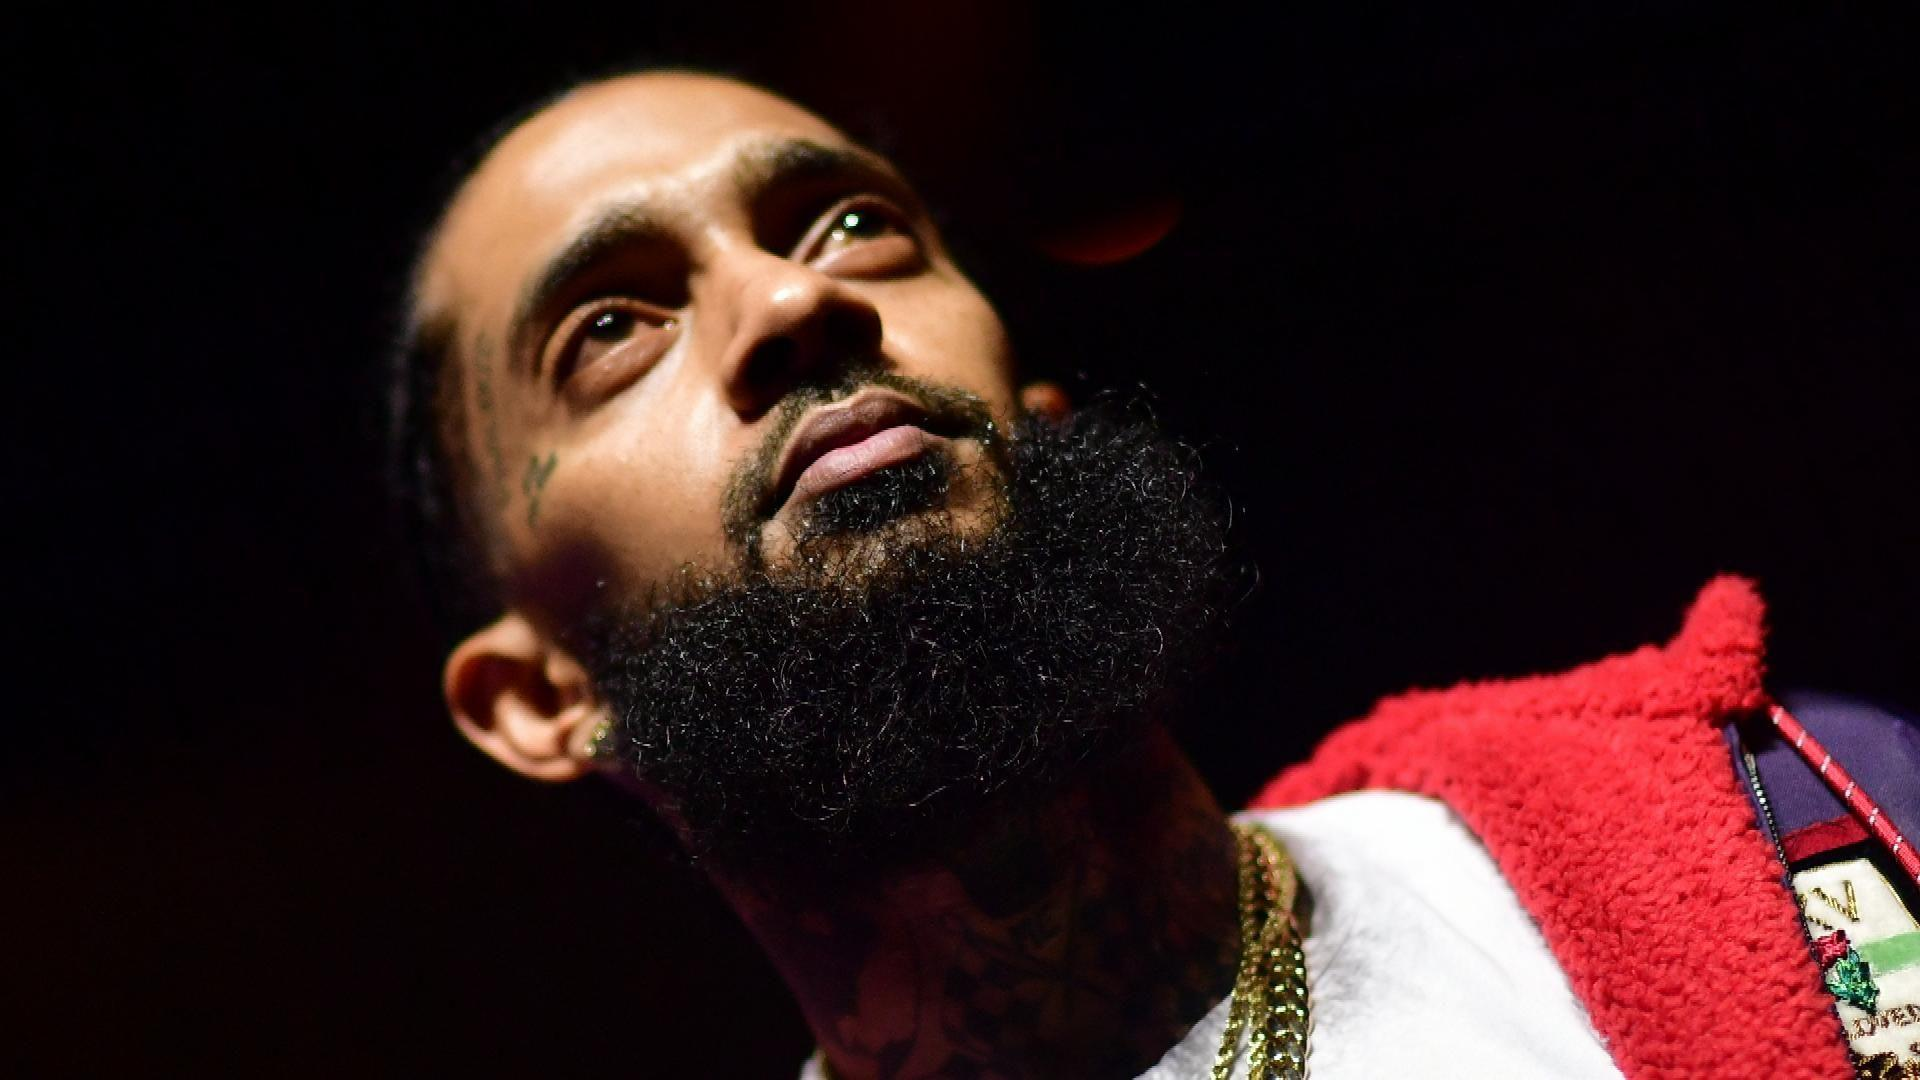 Nipsey Hussle Dead at 33, Rest in Power